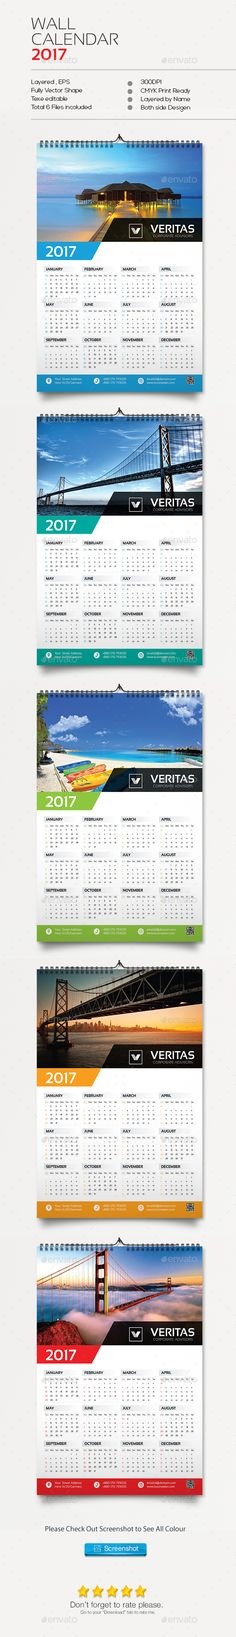 1 Page Wall Calendar 2017 | Calendar 2017, Wall Calendars And Design